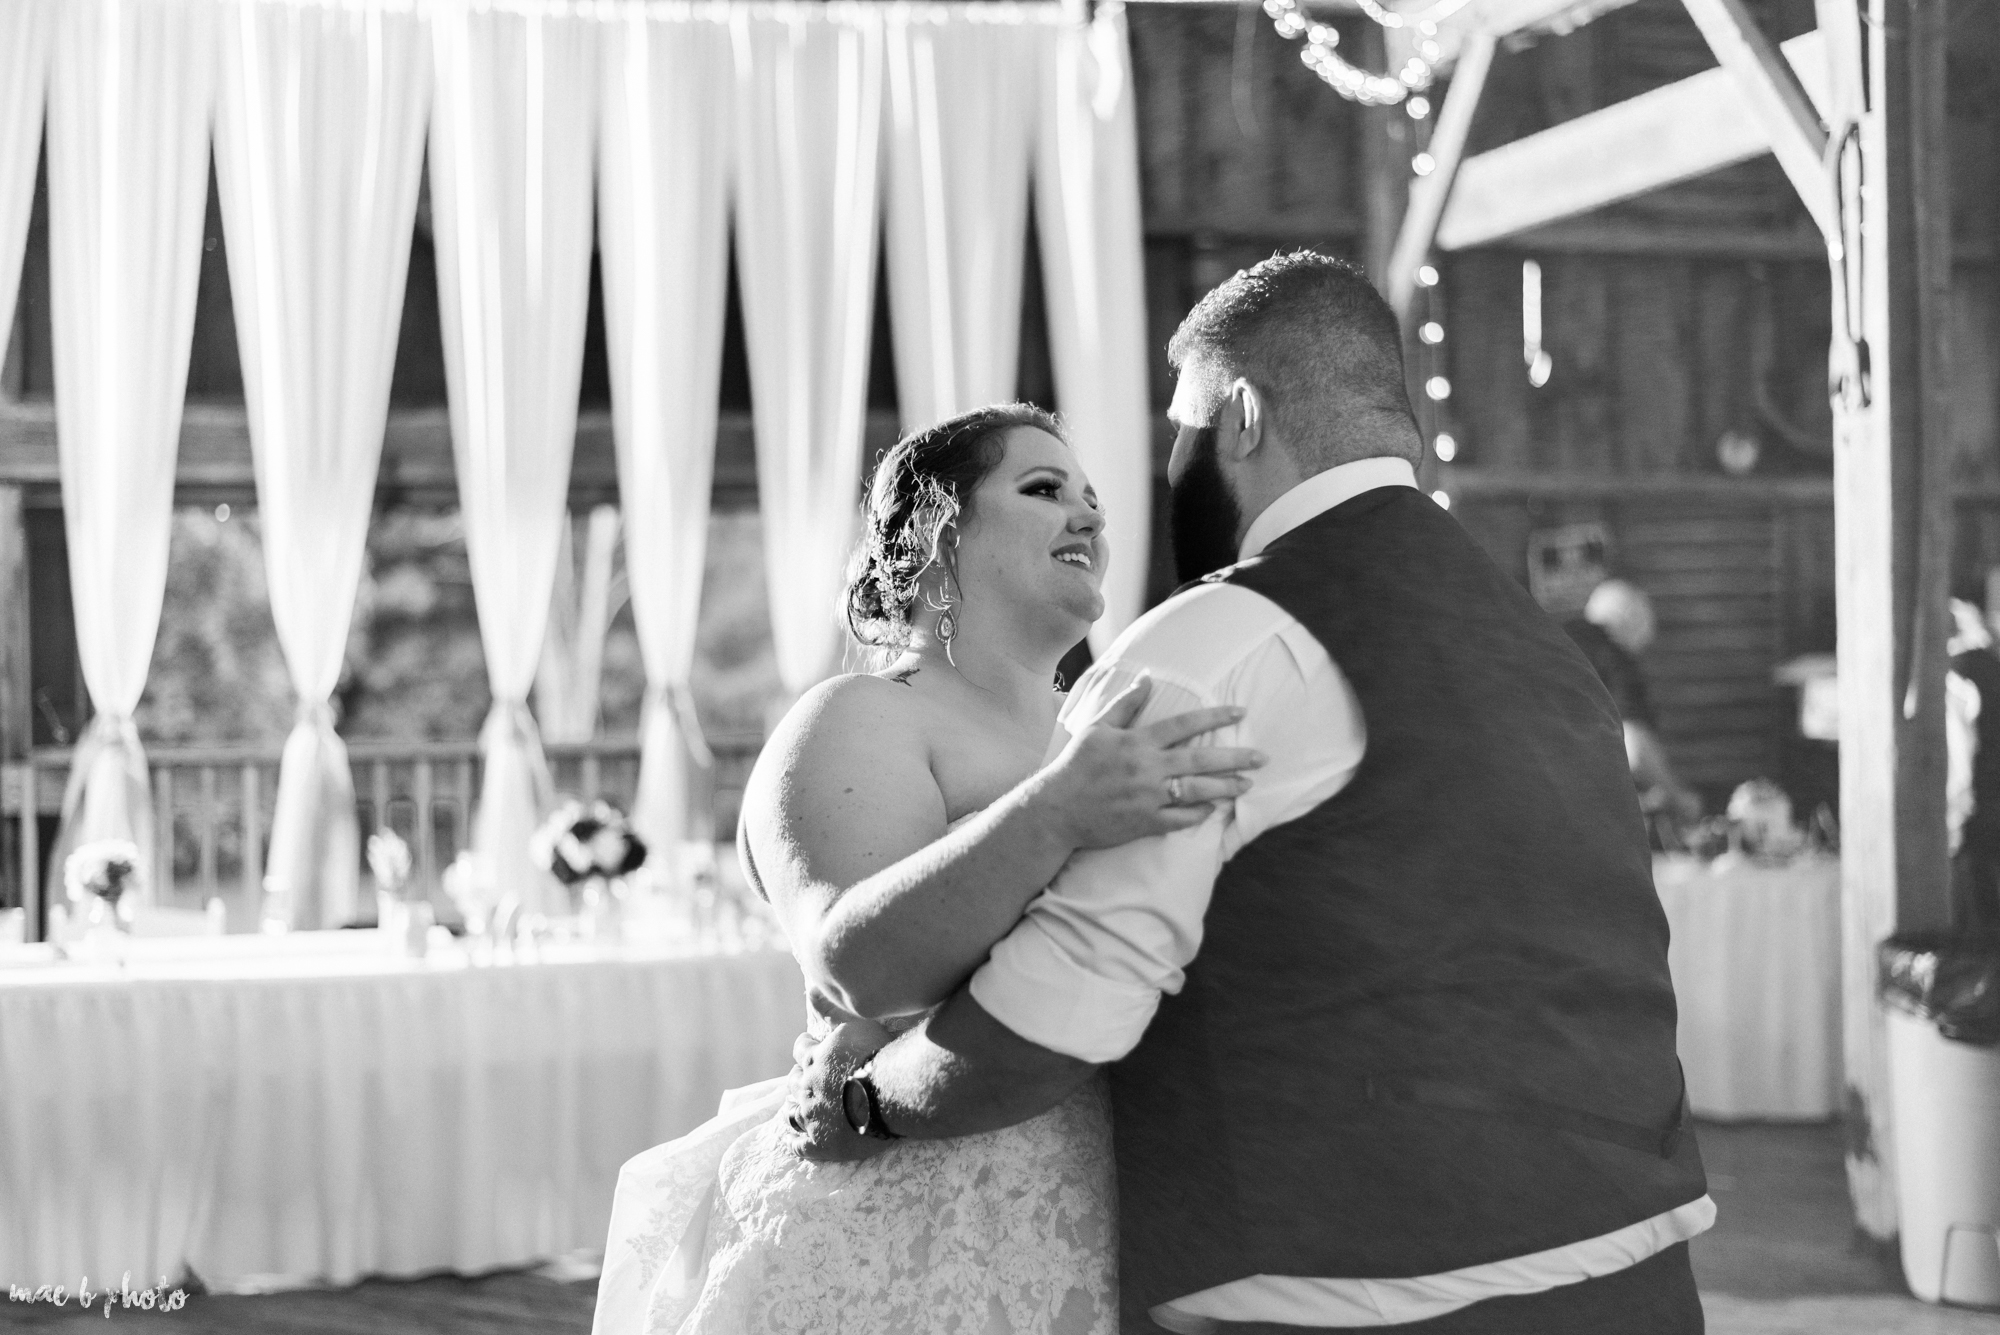 Amber & Kyle's Rustic Barn Wedding at SNPJ in Enon Valley, PA by Mae B Photo-87.jpg